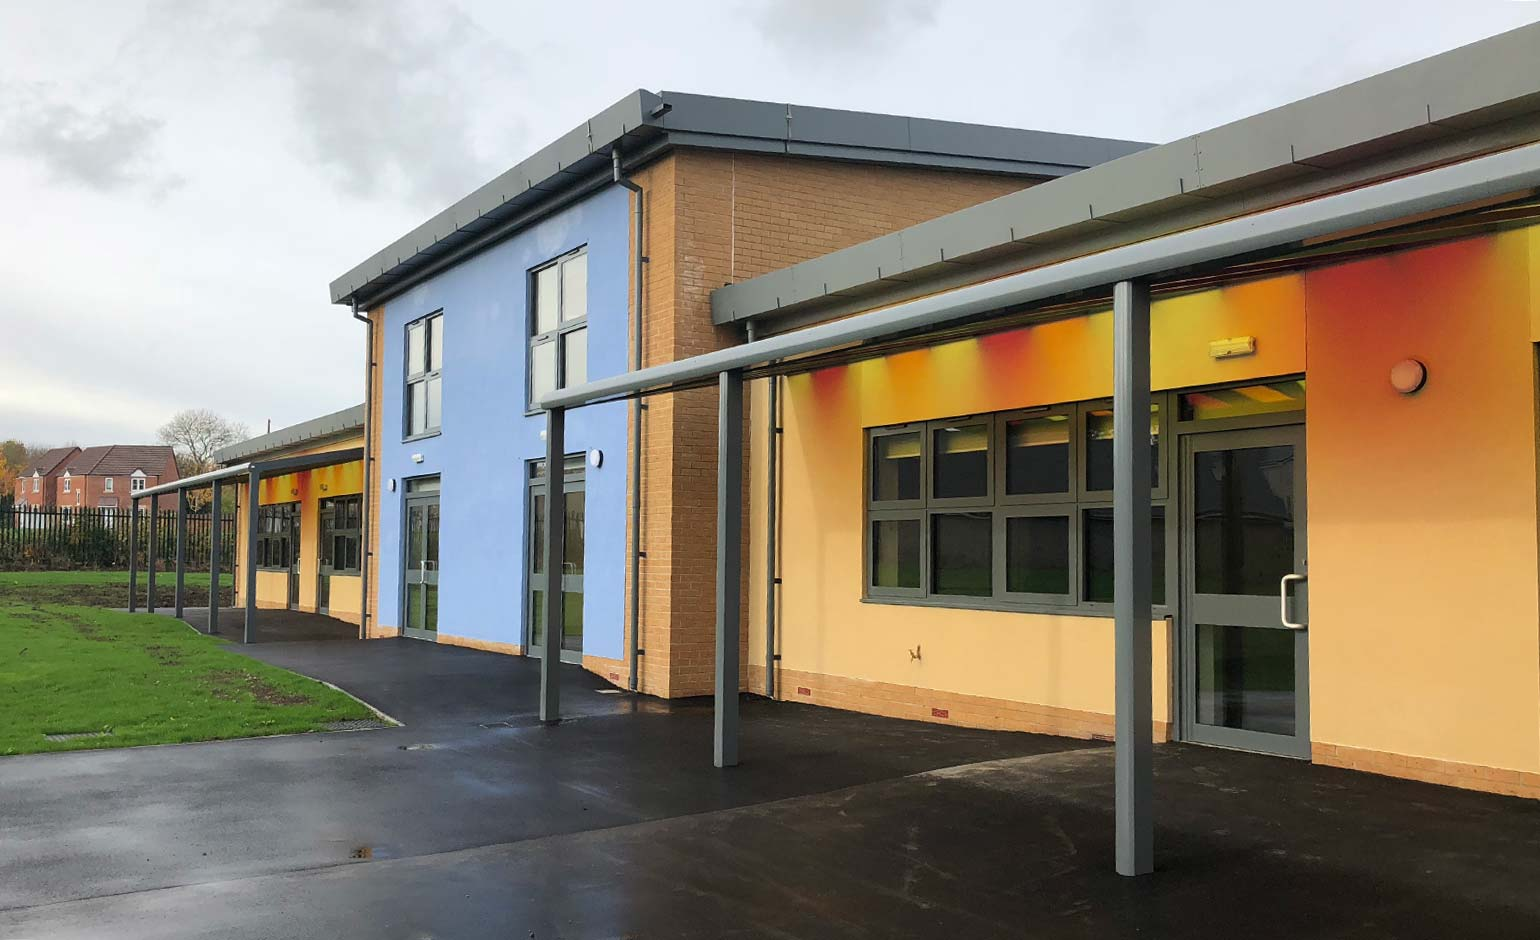 Council invests £7.5m to provide hundreds of additional school places